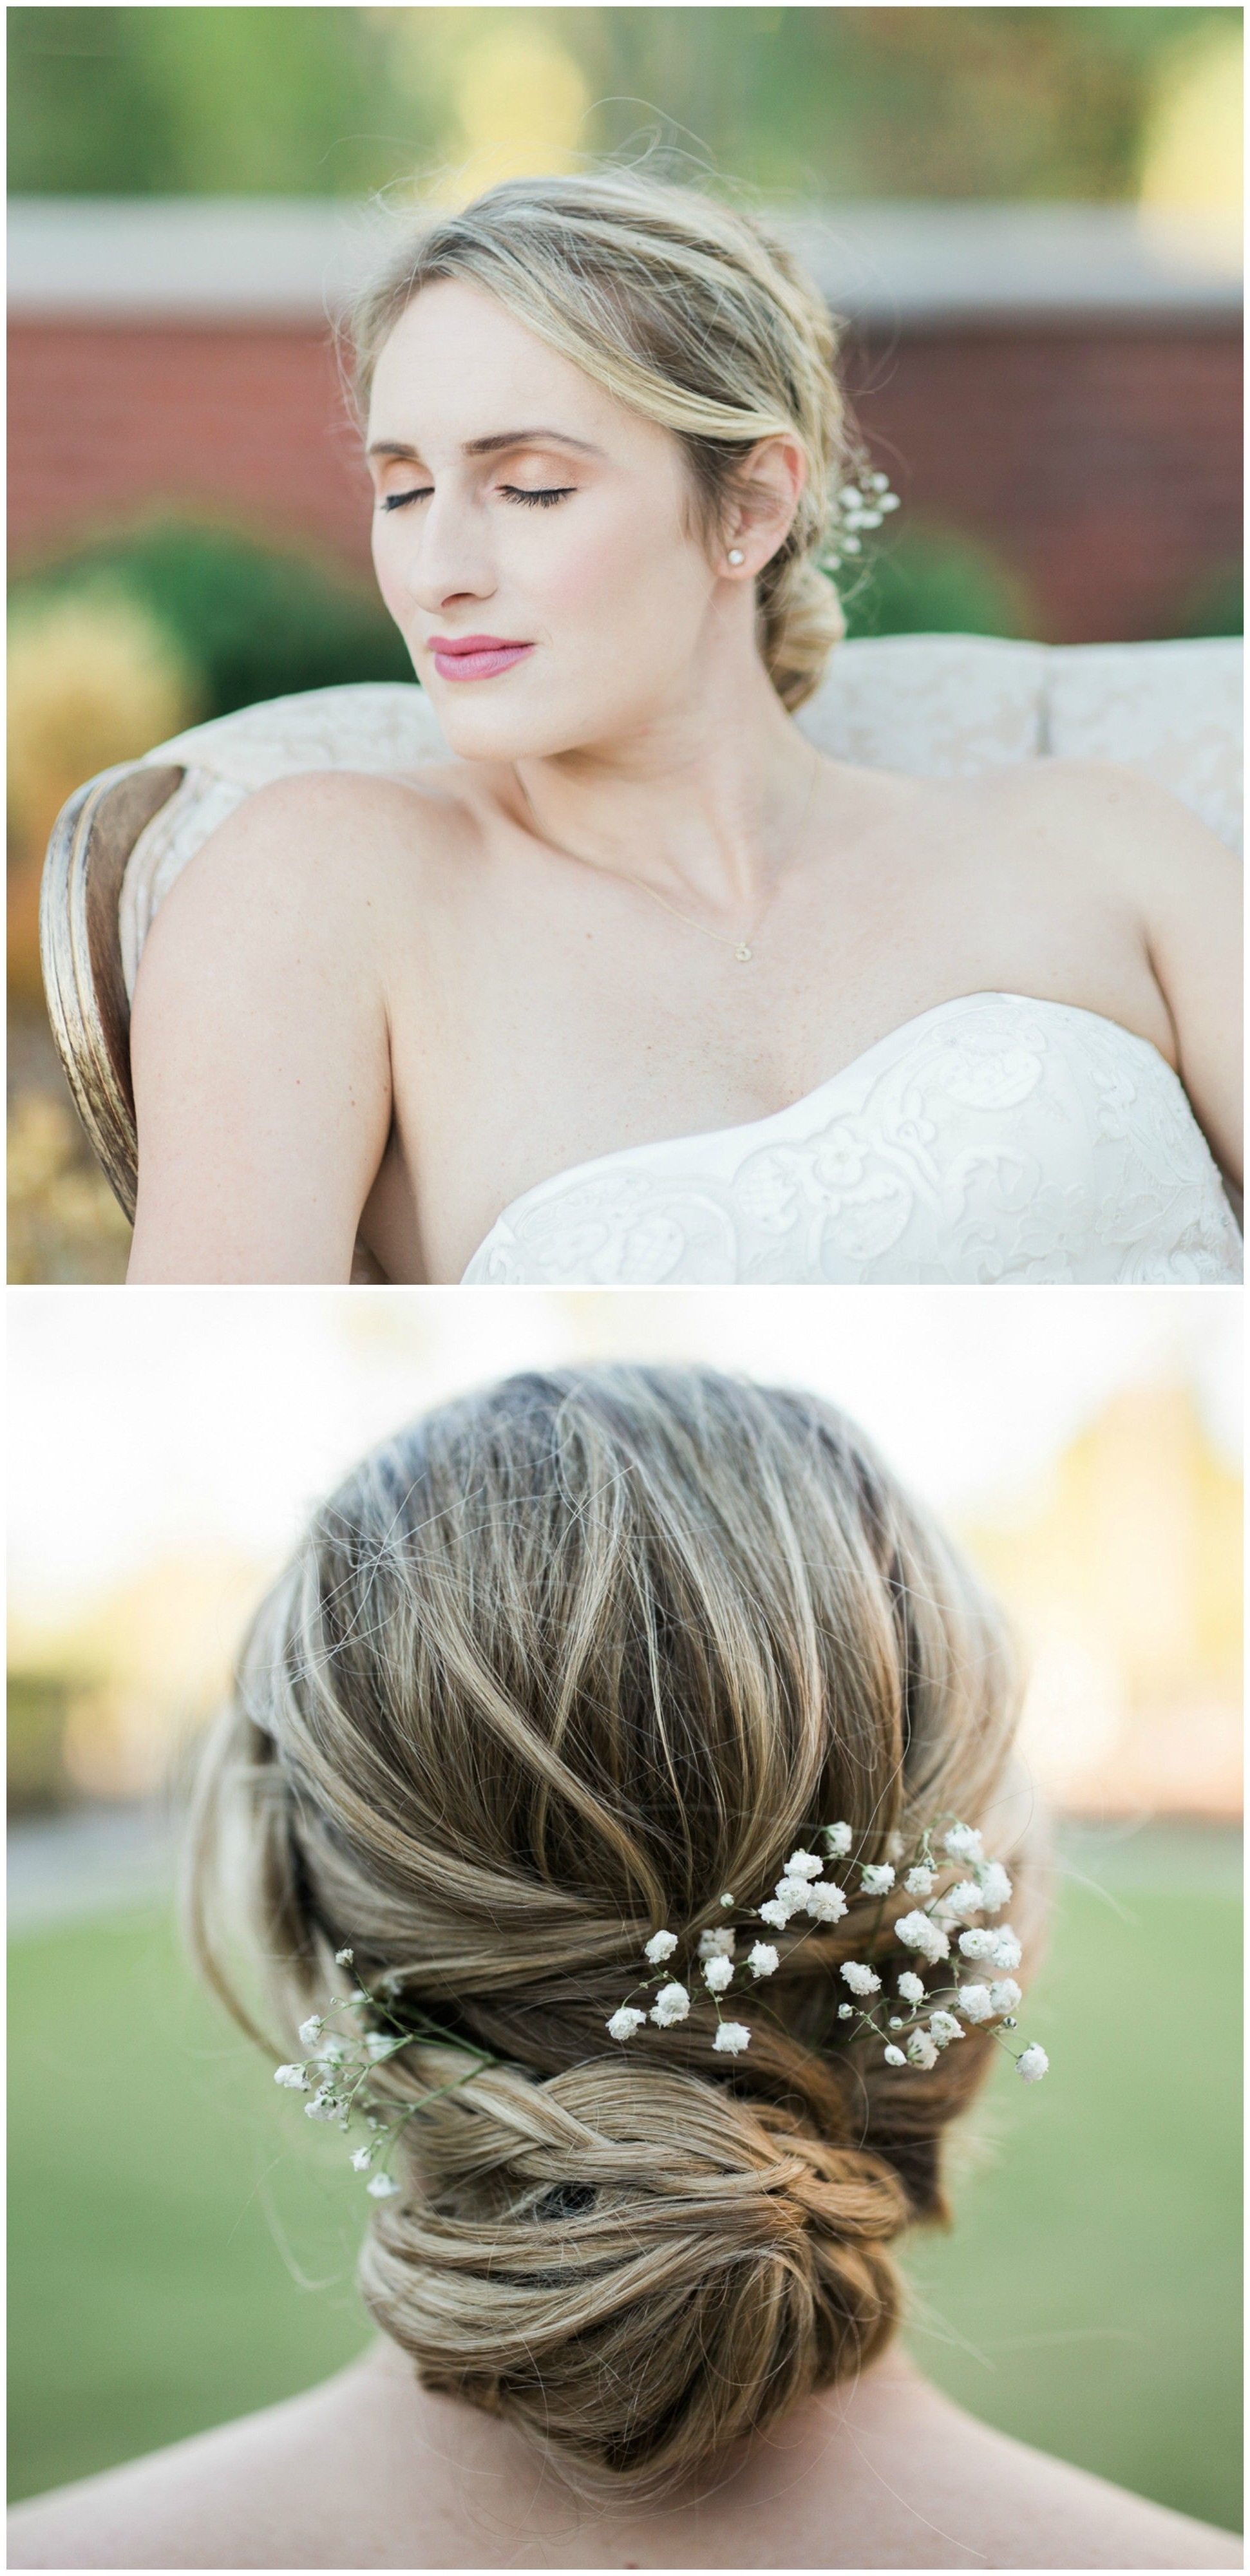 Fashionable Relaxed Wedding Hairstyles Throughout The Smarter Way To Wed (View 7 of 15)